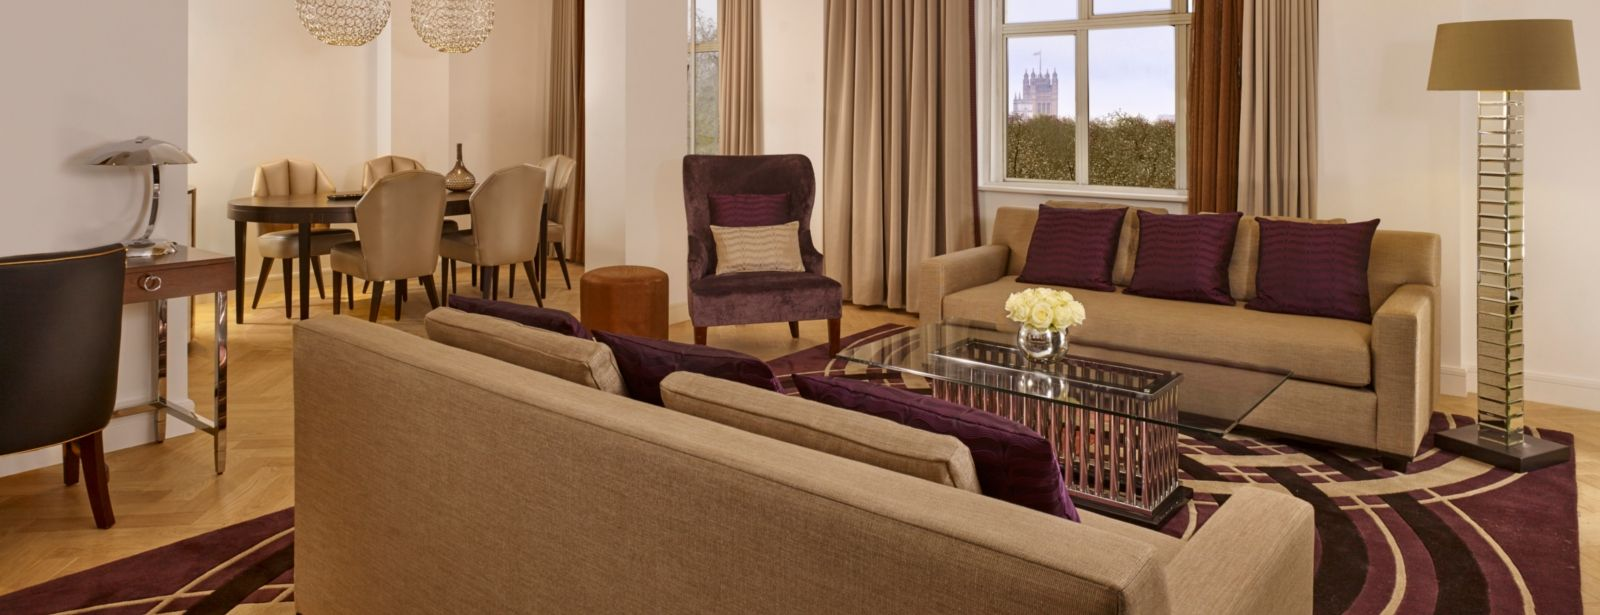 Park View Hotel Suite in Mayfair